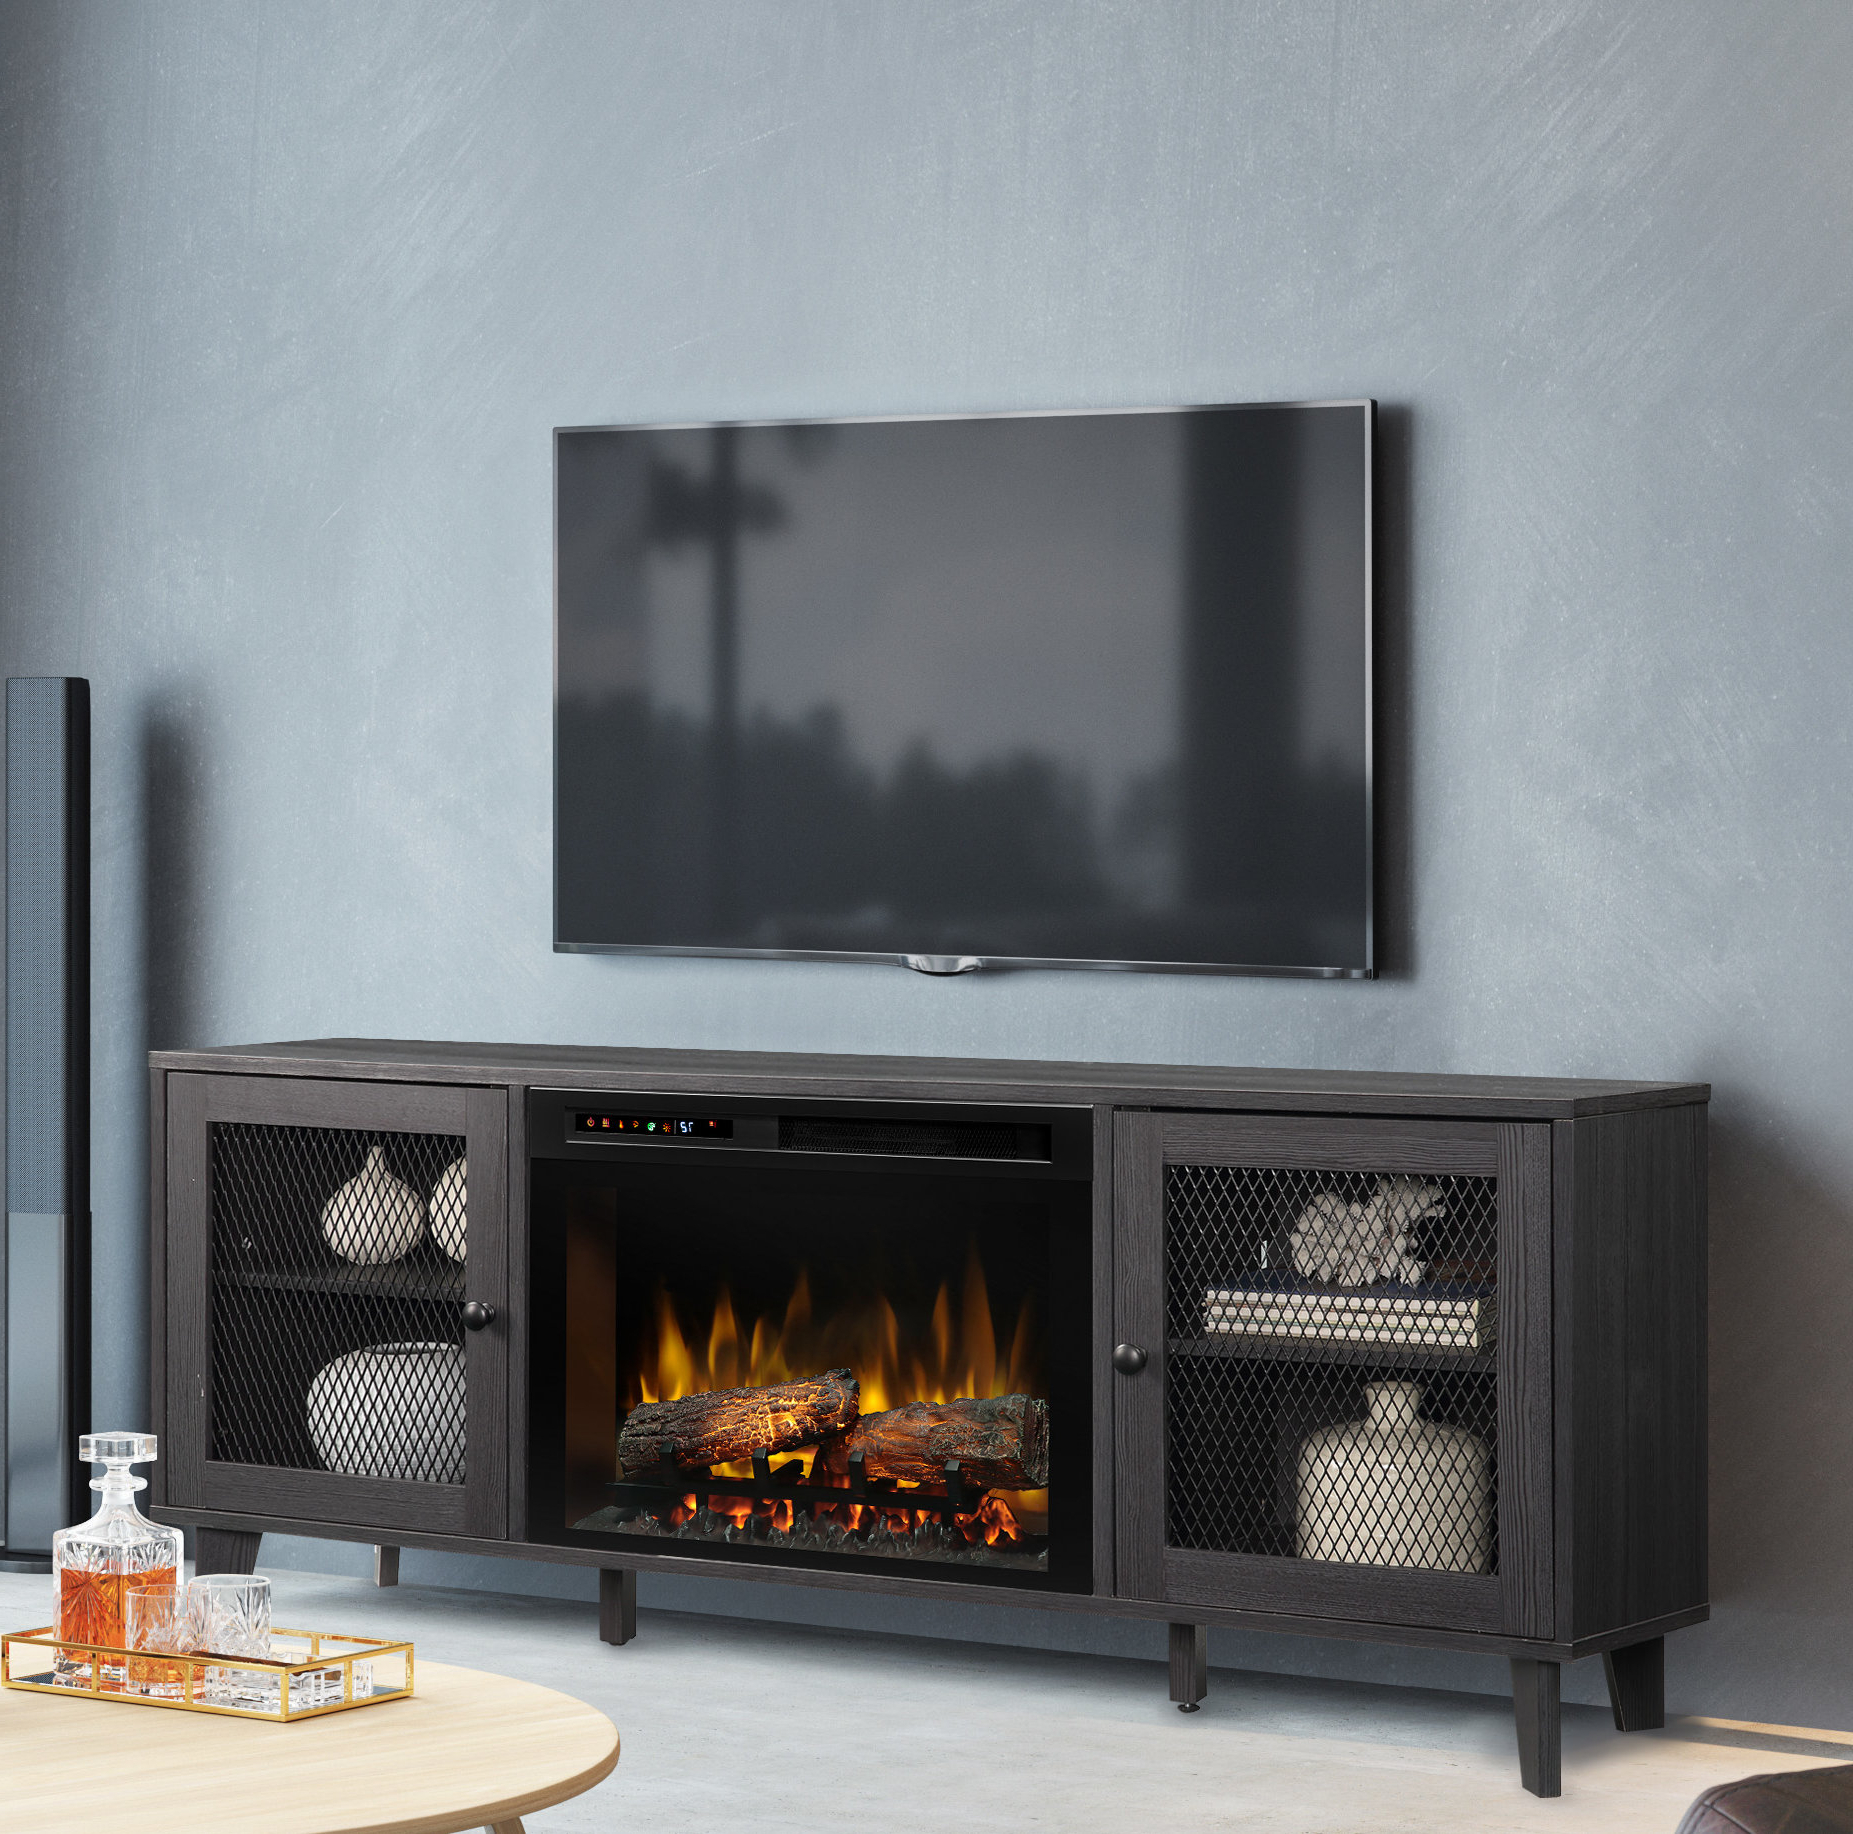 Newest 60 69 Inch Tv Stand Fireplaces You'll Love (Gallery 20 of 20)